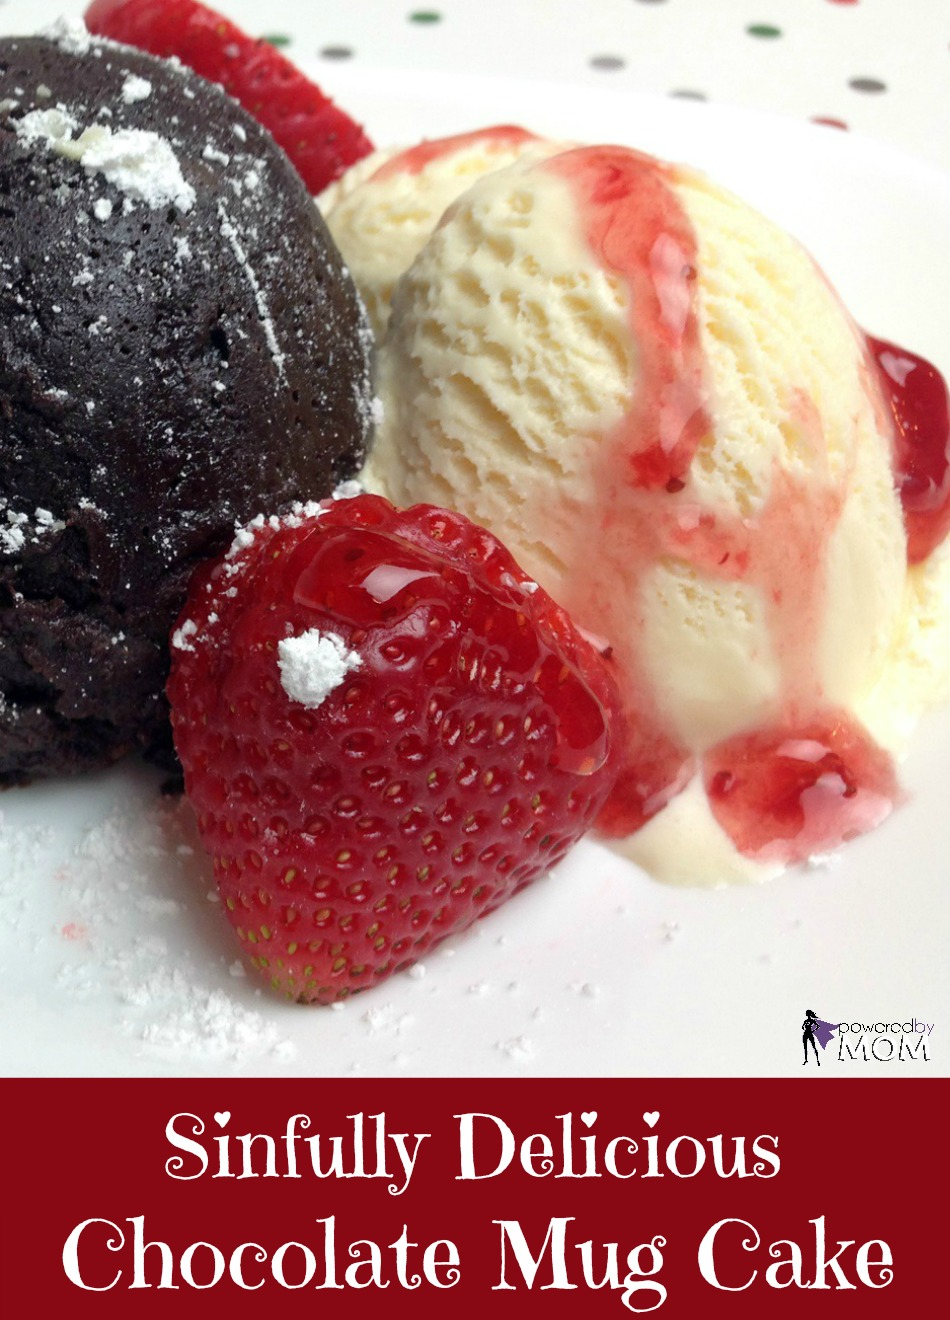 Sinfully Delicious Gluten Free Chocolate Mug Cake banner 2b